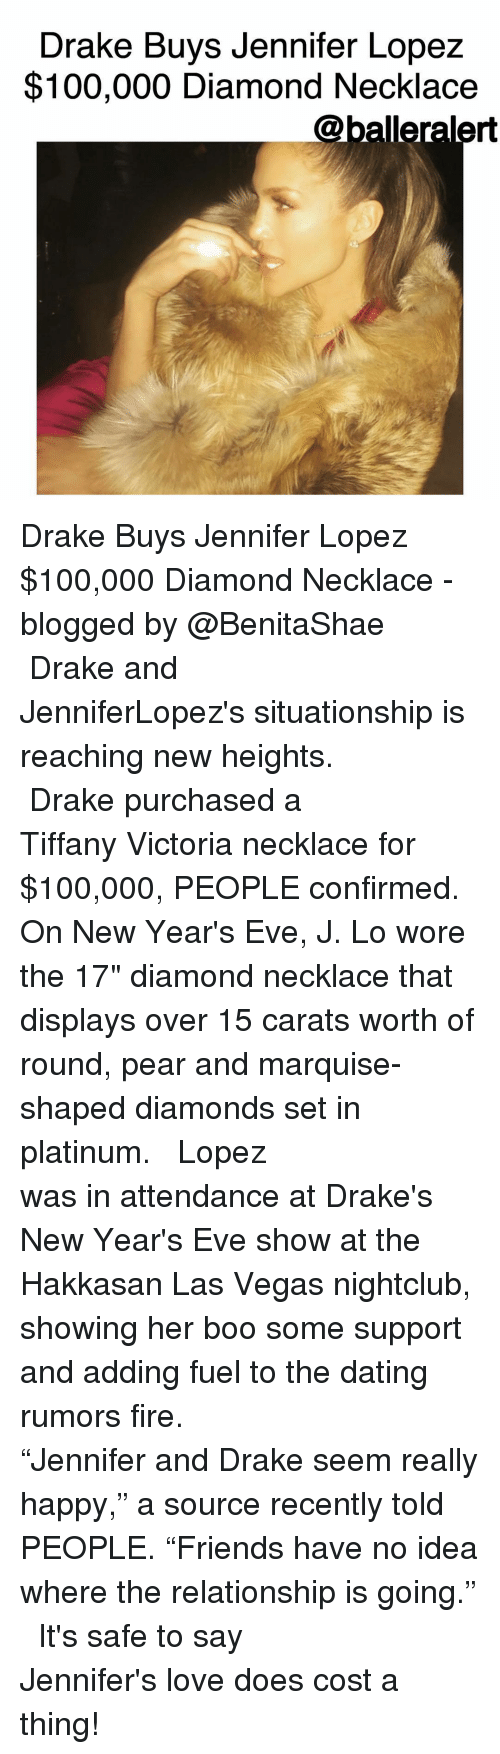 """j lo: Drake Buys Jennifer Lopez  $100,000 Diamond Necklace  @balleralert Drake Buys Jennifer Lopez $100,000 Diamond Necklace -blogged by @BenitaShae ⠀⠀⠀⠀⠀⠀⠀⠀⠀ ⠀⠀⠀⠀⠀⠀⠀⠀⠀ Drake and JenniferLopez's situationship is reaching new heights. ⠀⠀⠀⠀⠀⠀⠀⠀⠀ ⠀⠀⠀⠀⠀⠀⠀⠀⠀ Drake purchased a Tiffany Victoria necklace for $100,000, PEOPLE confirmed. On New Year's Eve, J. Lo wore the 17"""" diamond necklace that displays over 15 carats worth of round, pear and marquise-shaped diamonds set in platinum. ⠀⠀⠀⠀⠀⠀⠀⠀⠀ ⠀⠀⠀⠀⠀⠀⠀⠀⠀ Lopez was in attendance at Drake's New Year's Eve show at the Hakkasan Las Vegas nightclub, showing her boo some support and adding fuel to the dating rumors fire. ⠀⠀⠀⠀⠀⠀⠀⠀⠀ ⠀⠀⠀⠀⠀⠀⠀⠀⠀ """"Jennifer and Drake seem really happy,"""" a source recently told PEOPLE. """"Friends have no idea where the relationship is going."""" ⠀⠀⠀⠀⠀⠀⠀⠀⠀ ⠀⠀⠀⠀⠀⠀⠀⠀⠀ It's safe to say Jennifer's love does cost a thing!"""